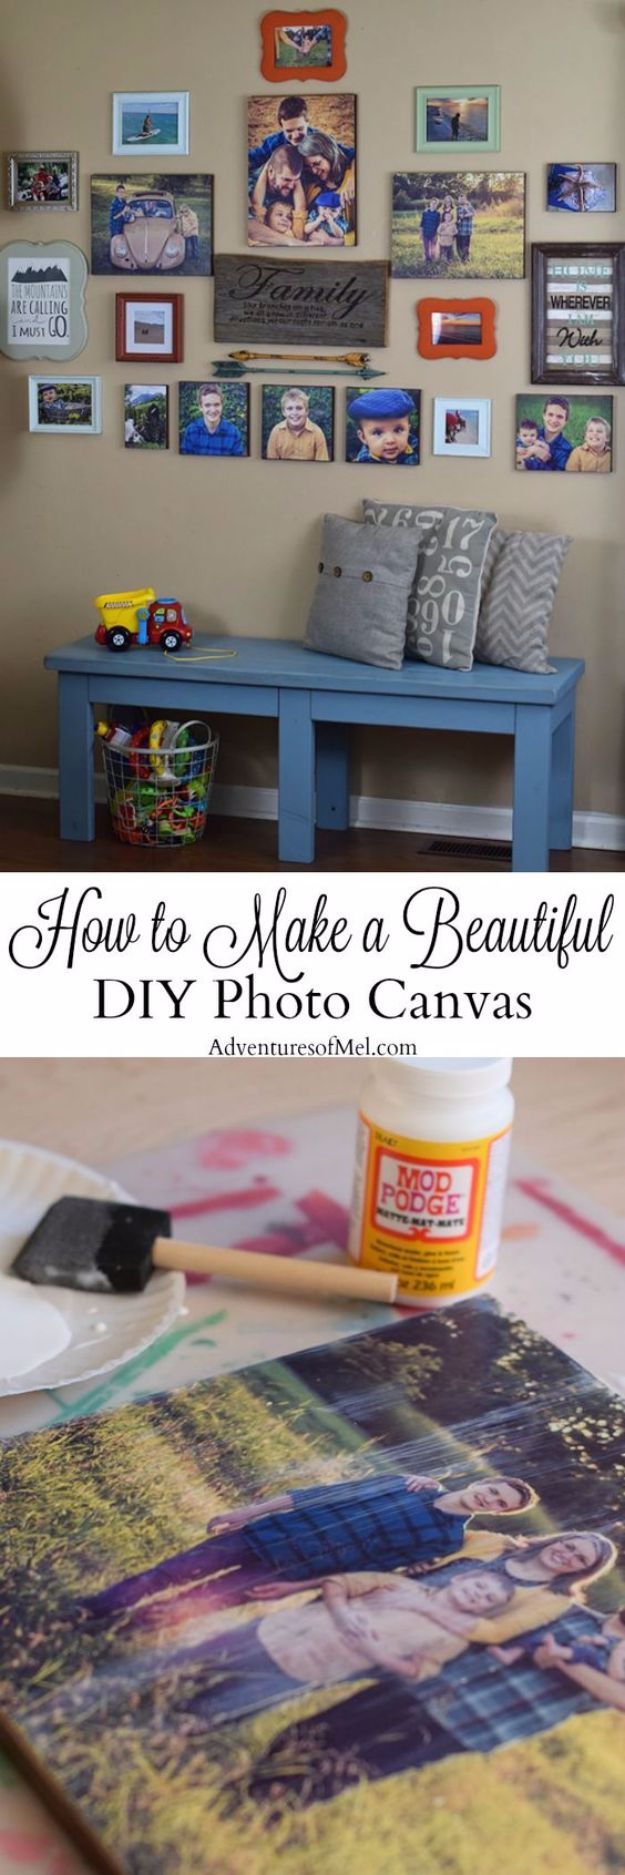 Mod Podge Crafts - Beautiful DIY Photo Canvas - DIY Modge Podge Ideas On Wood, Glass, Canvases, Fabric, Paper and Mason Jars - How To Make Pictures, Home Decor, Easy Craft Ideas and DIY Wall Art for Beginners - Cute, Cheap Crafty Homemade Gifts for Christmas and Birthday Presents http://diyjoy.com/mod-podge-crafts